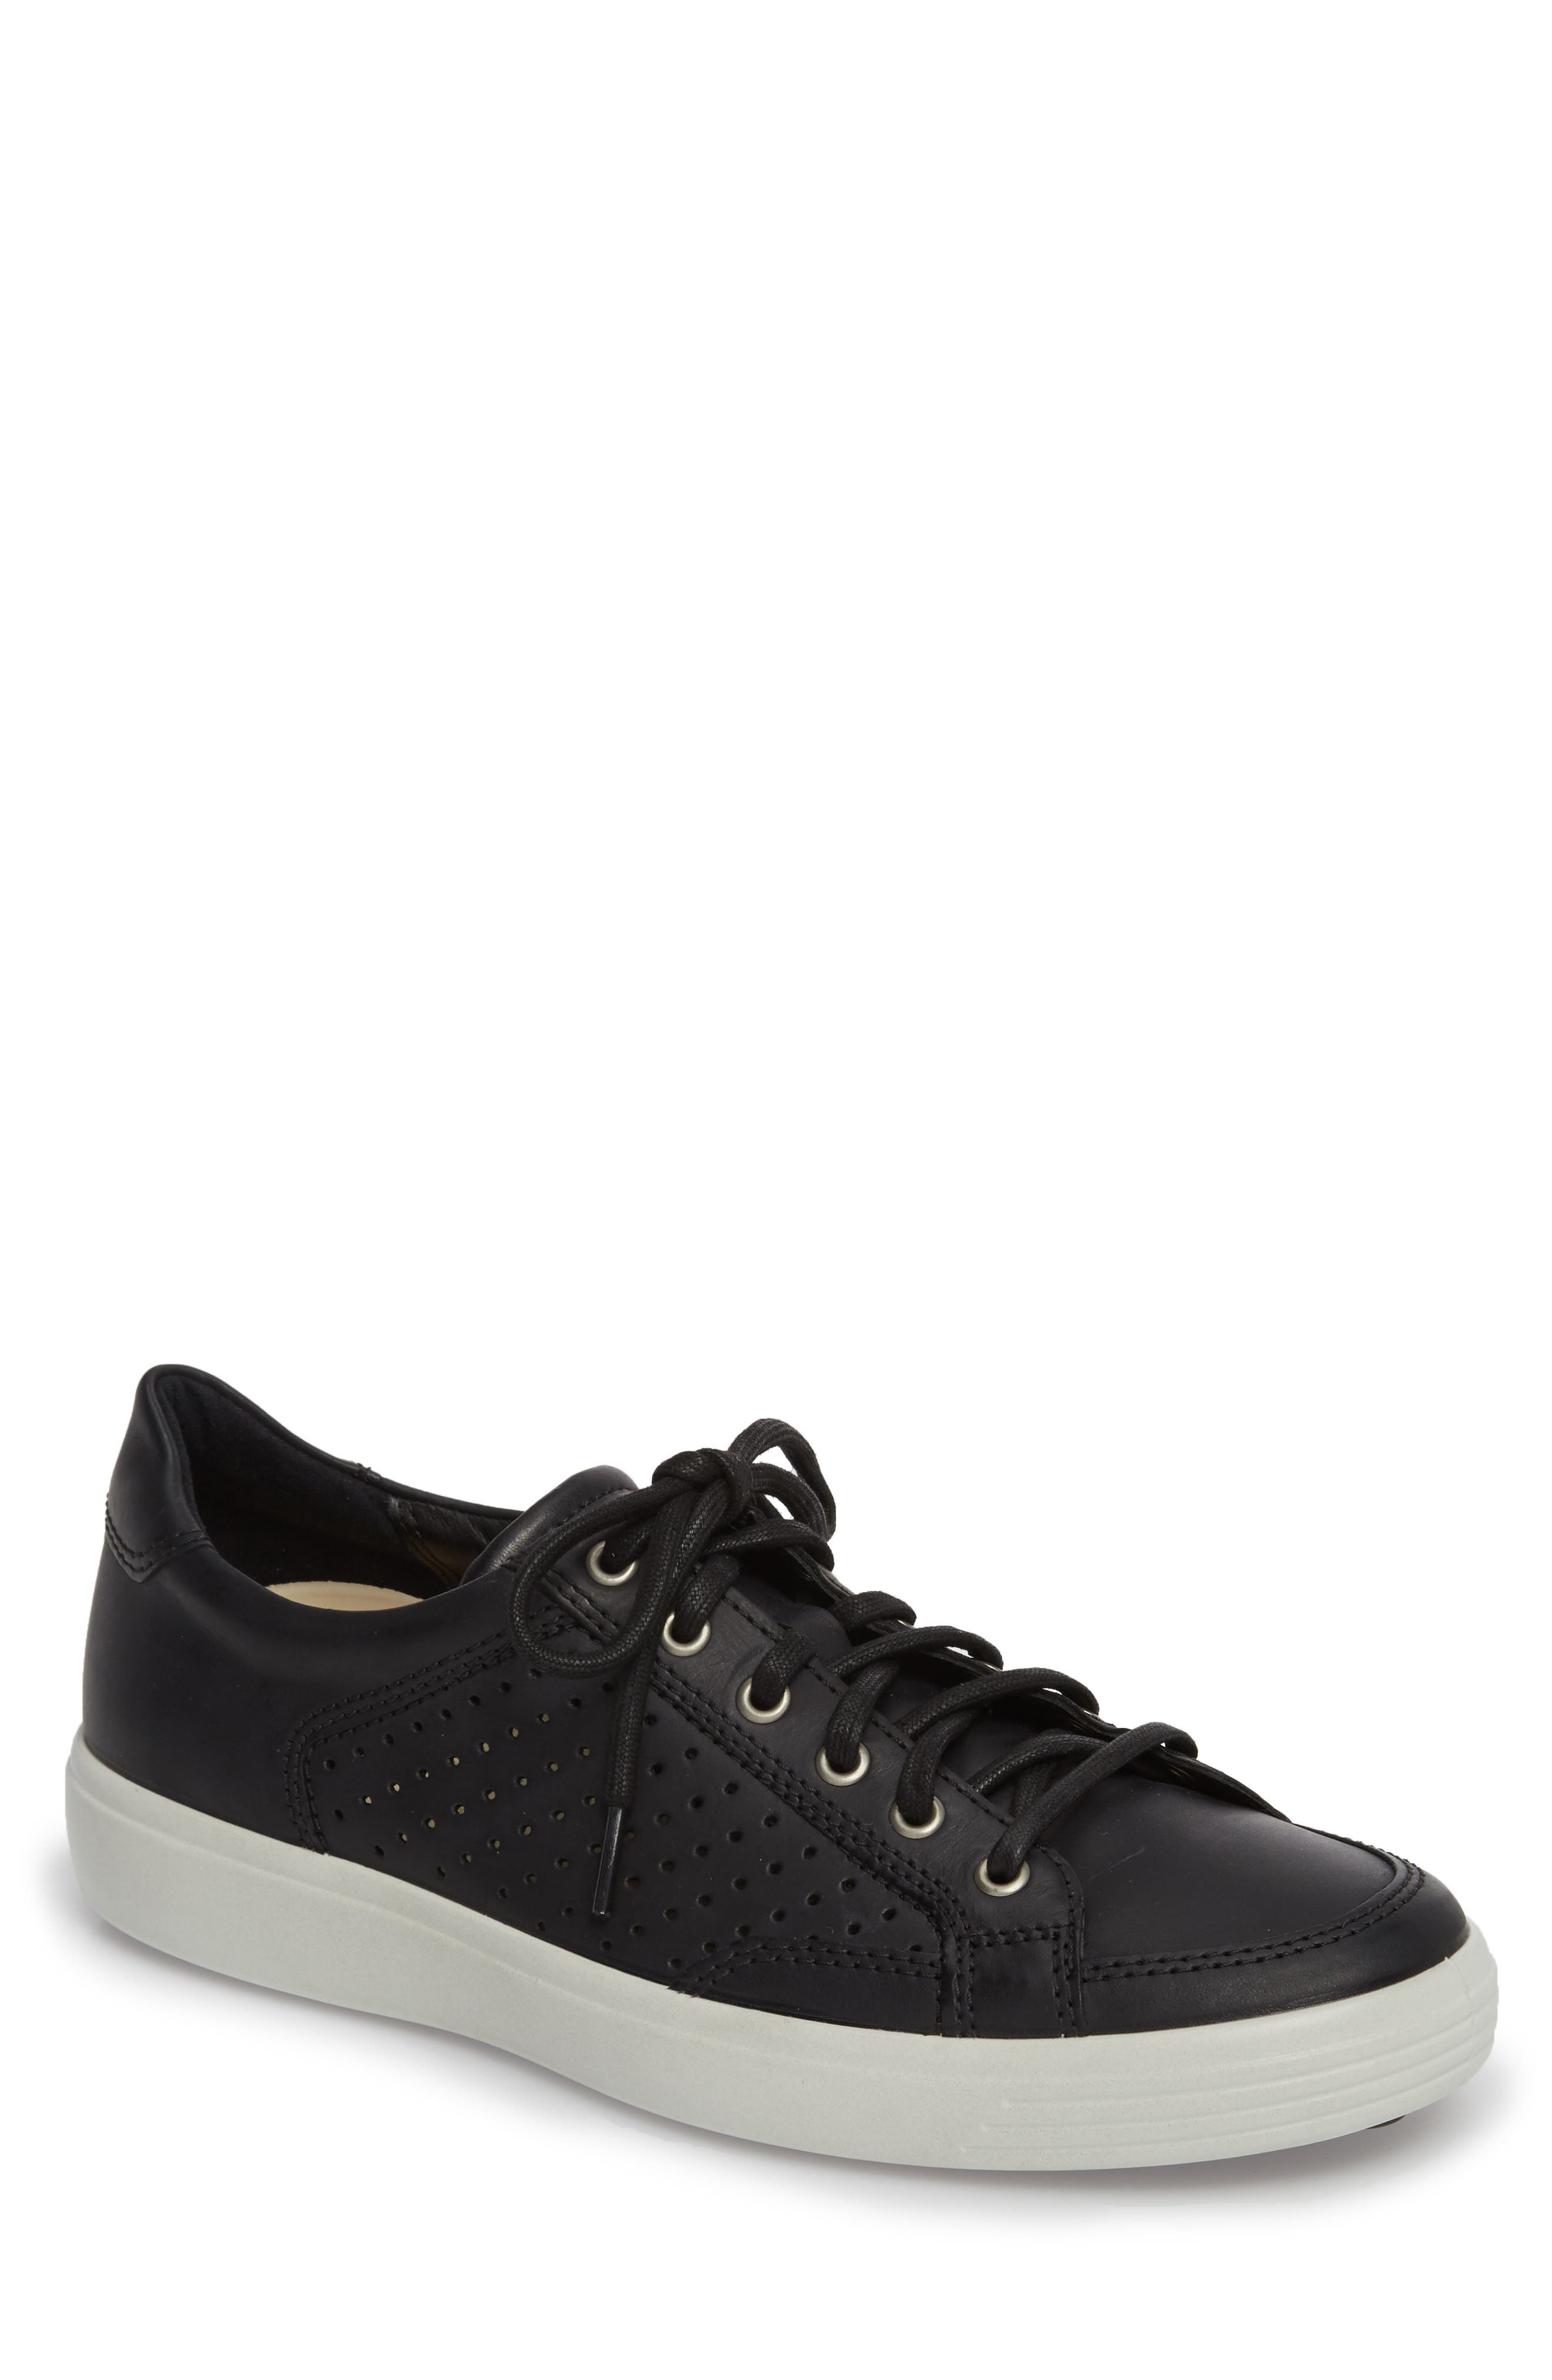 Soft 7 Retro Perforated Low Top Sneaker,                             Main thumbnail 1, color,                             Black Leather